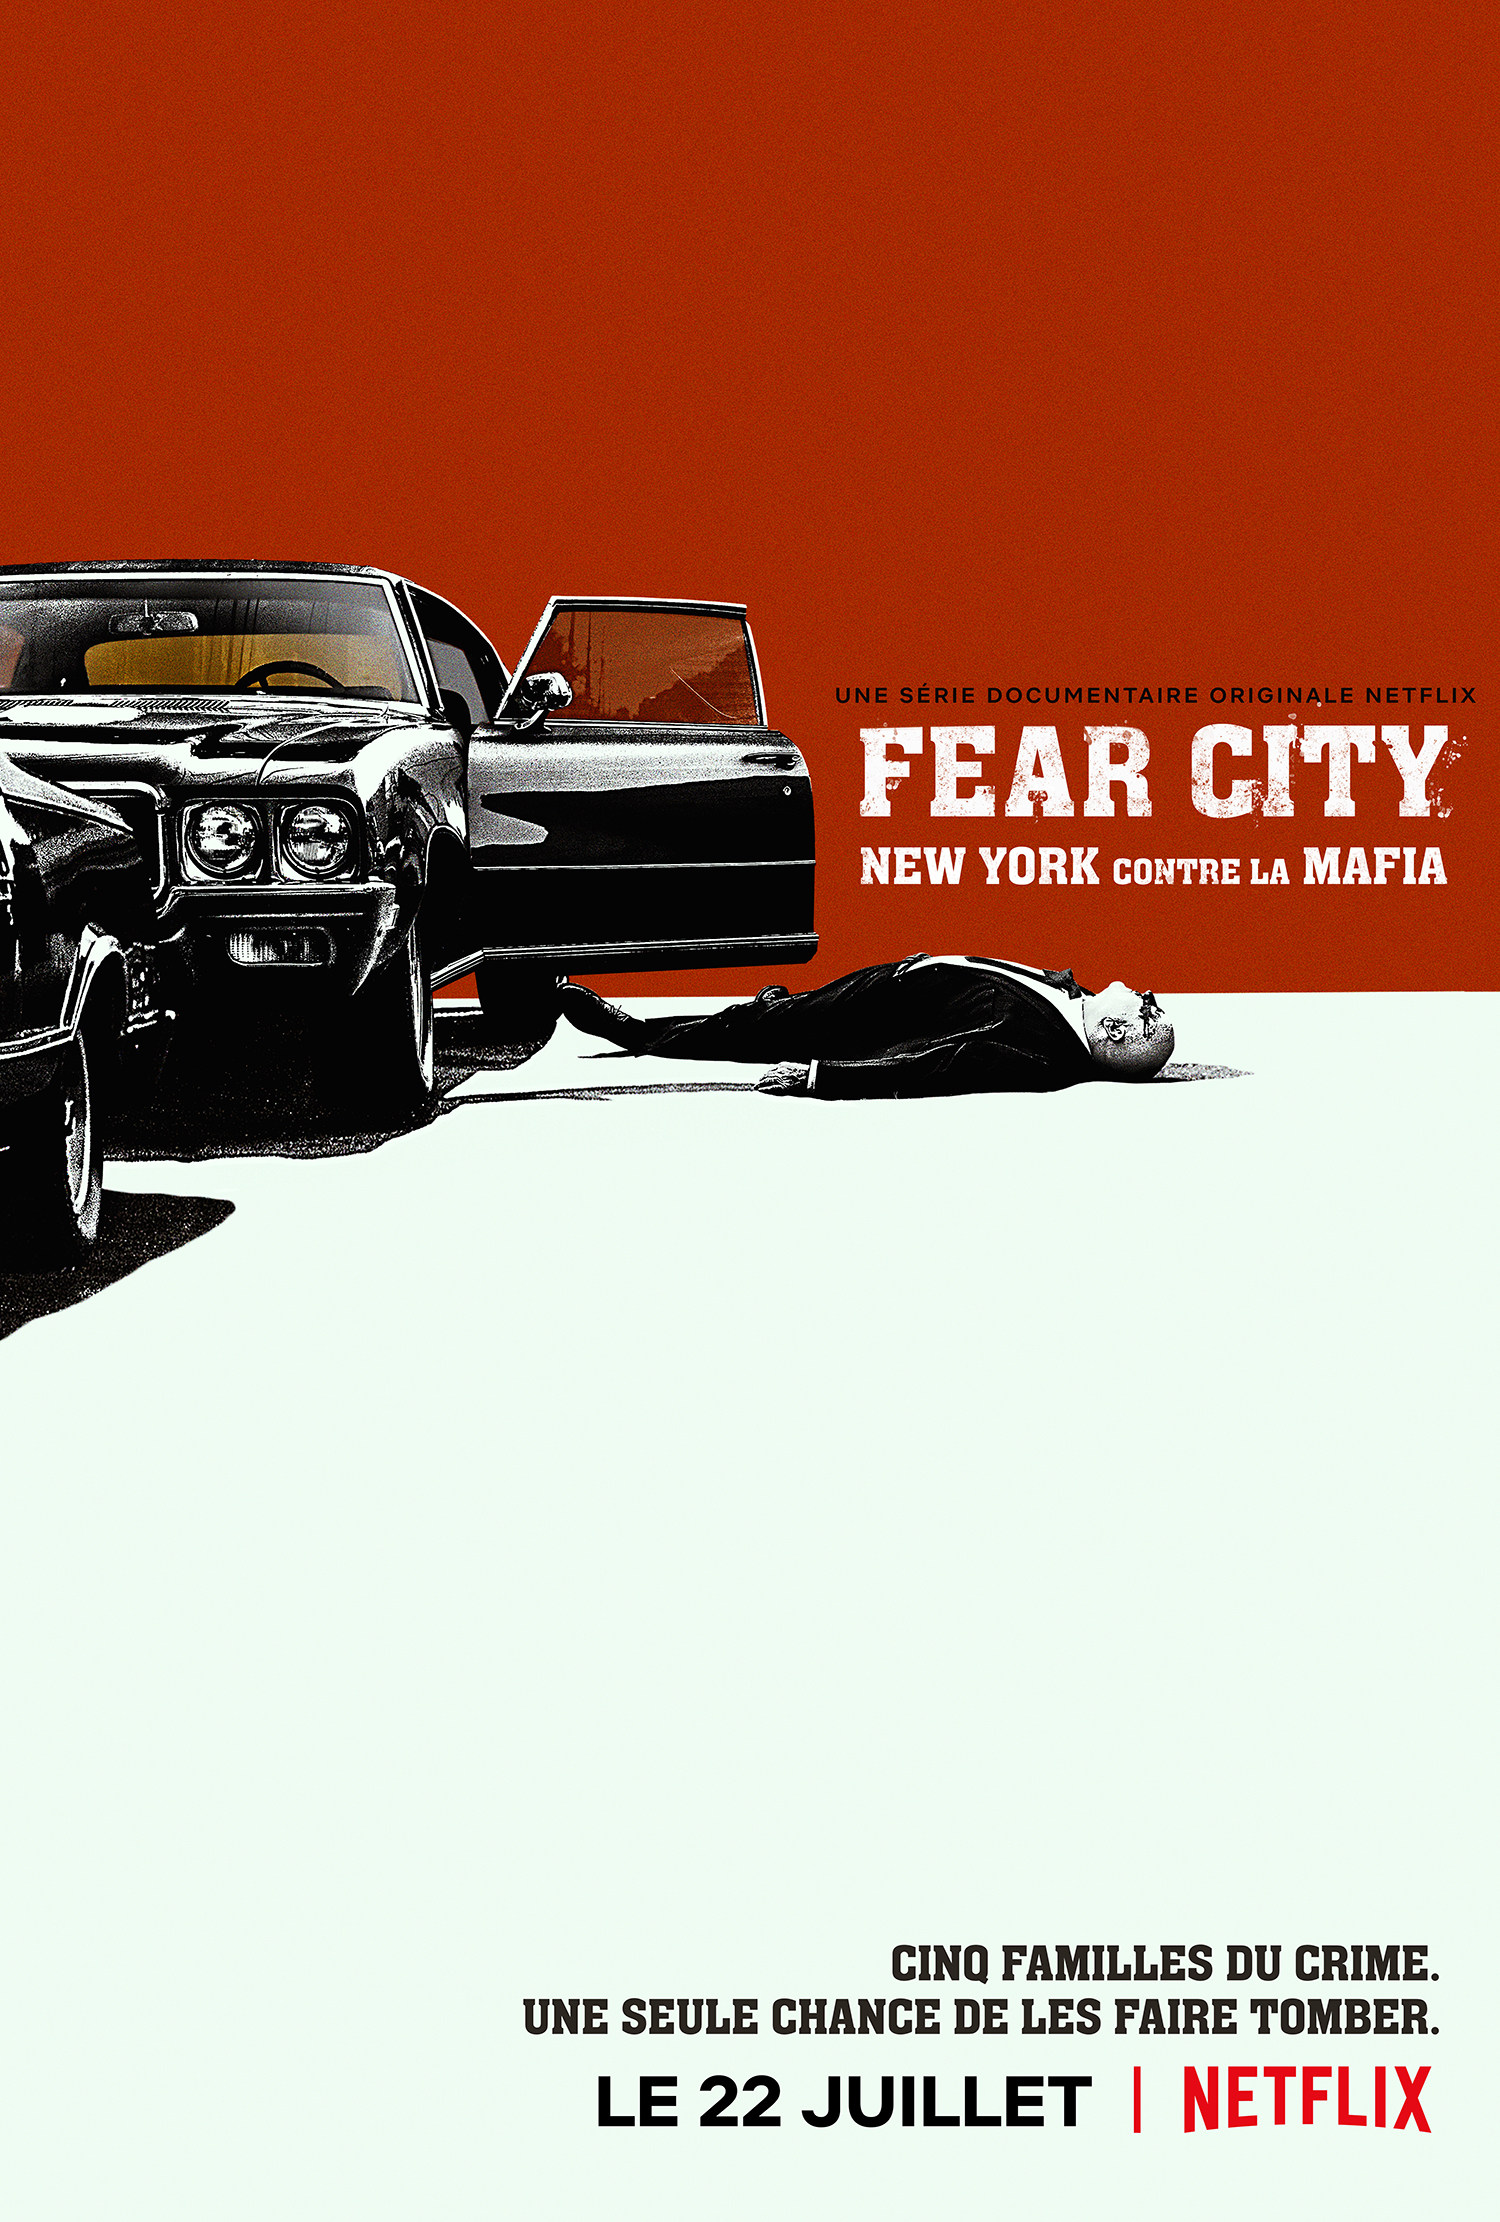 Fear_City_New_York_v_The_Mafia_S1_Netfli